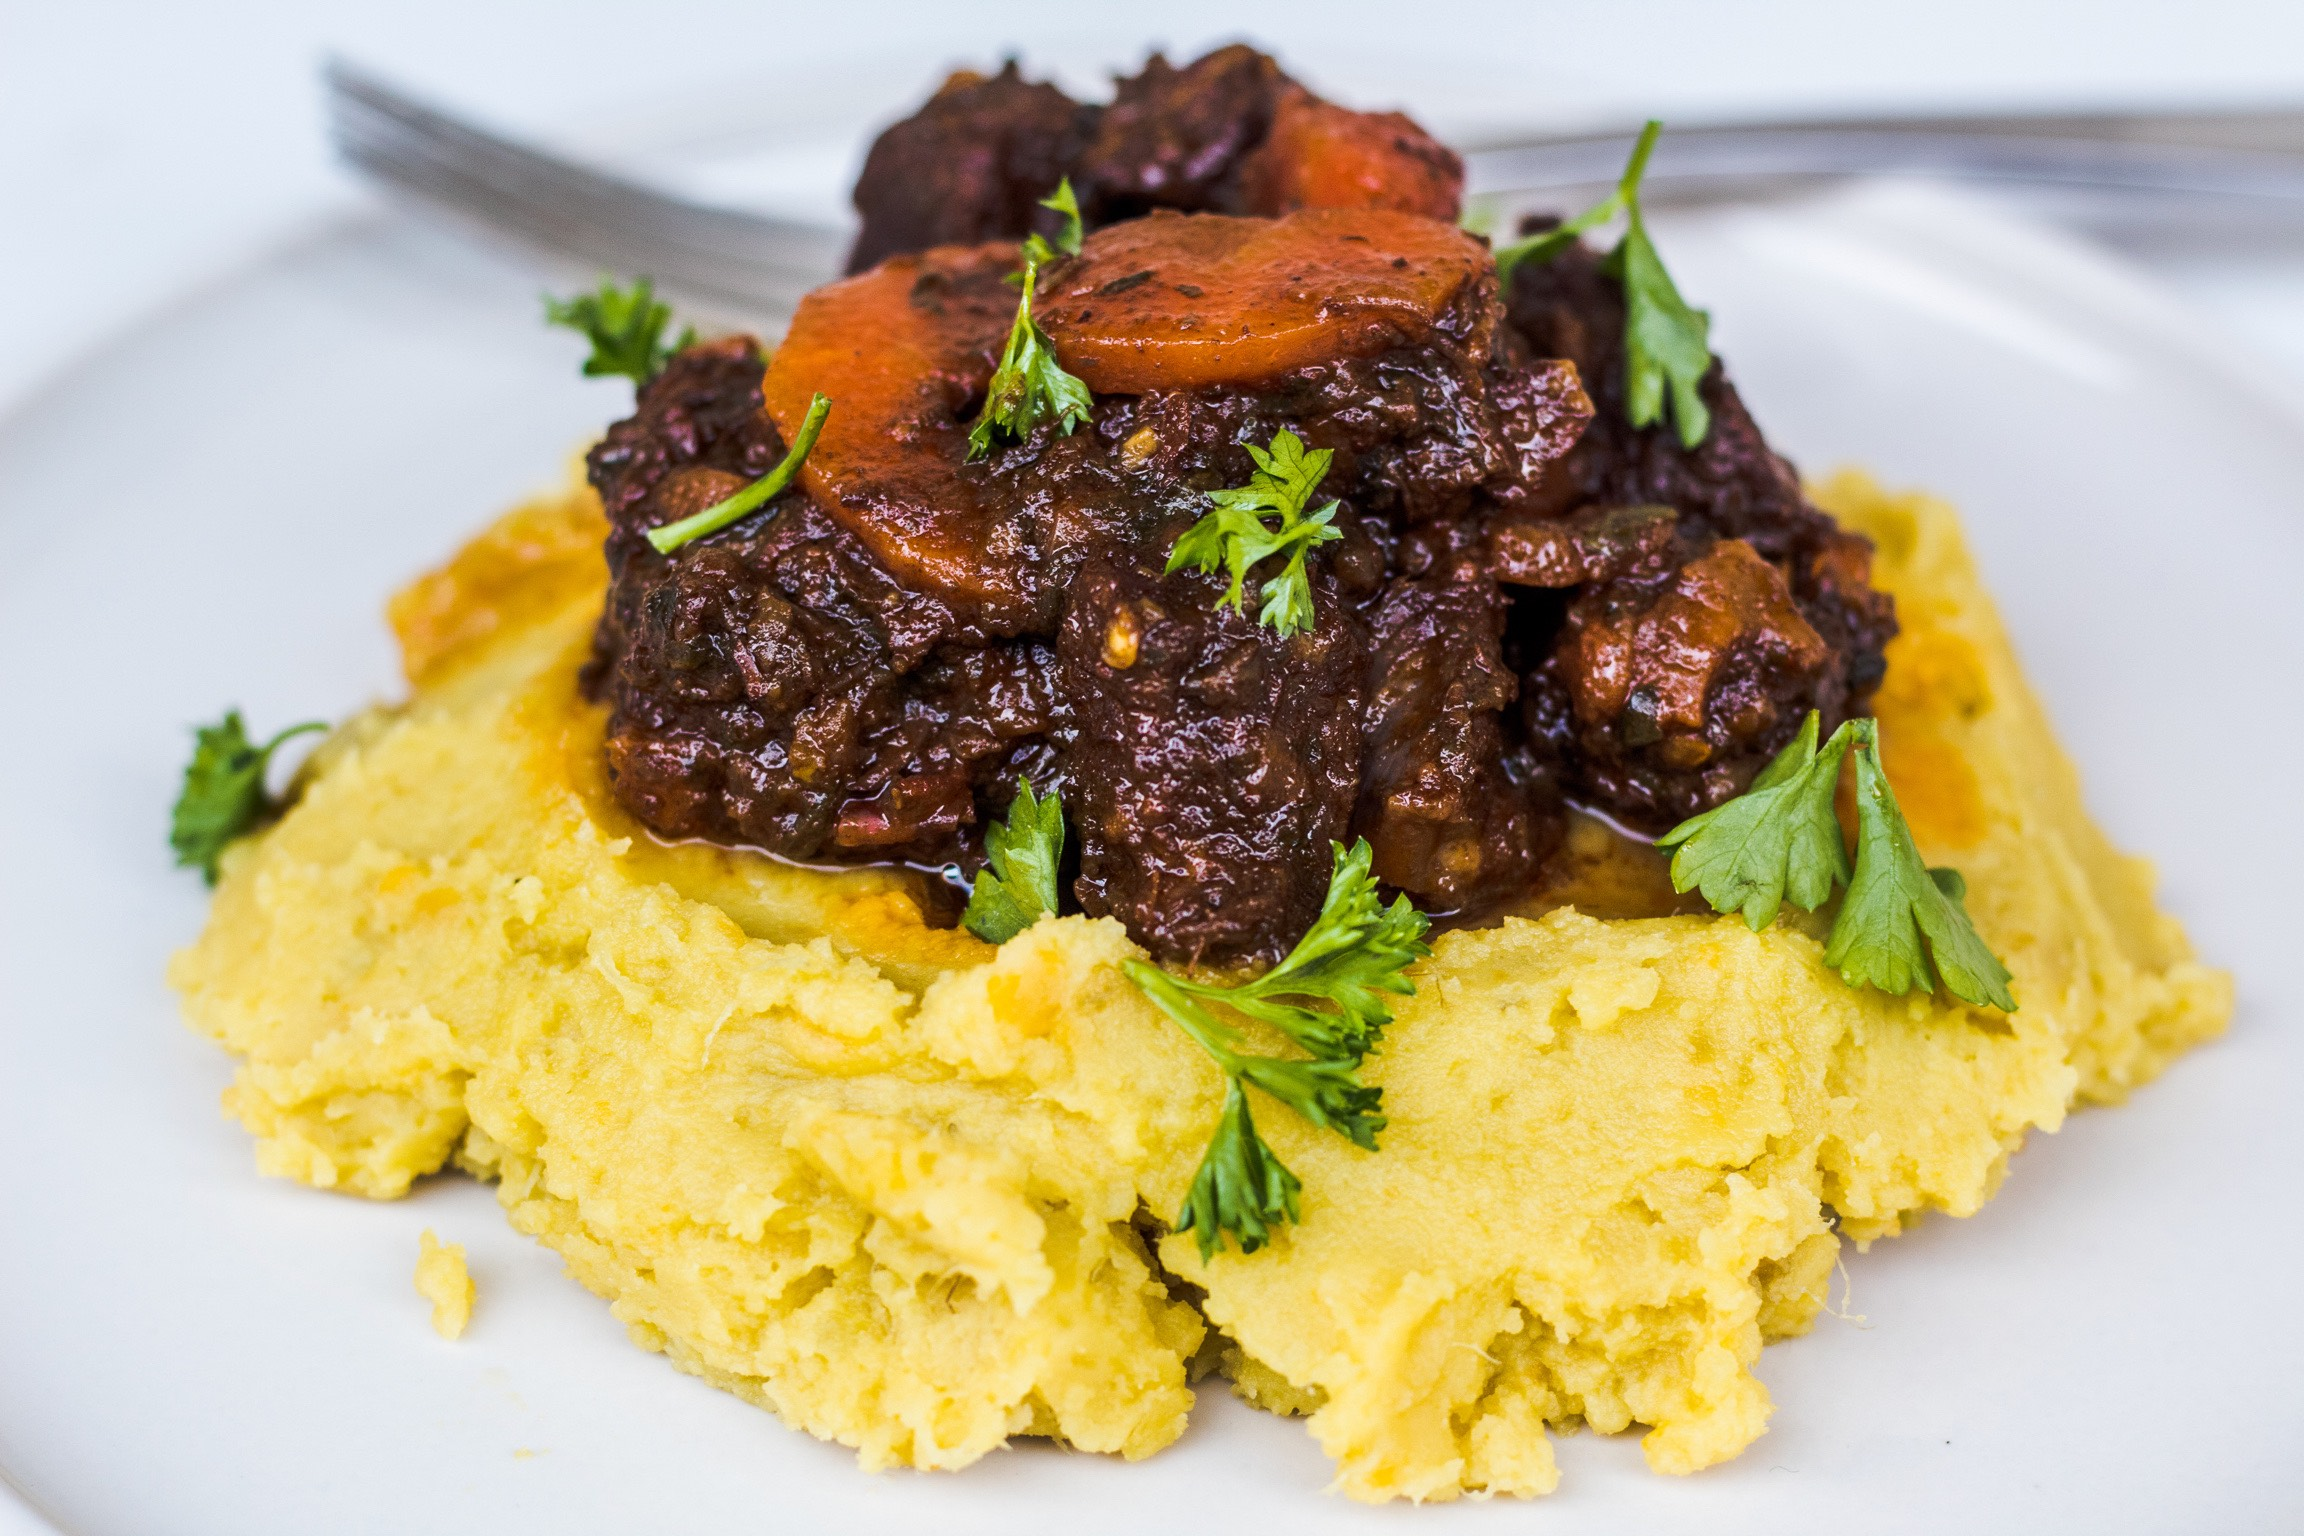 Rich Caribbean stew (stewed) beef and creamy sweet potato mash